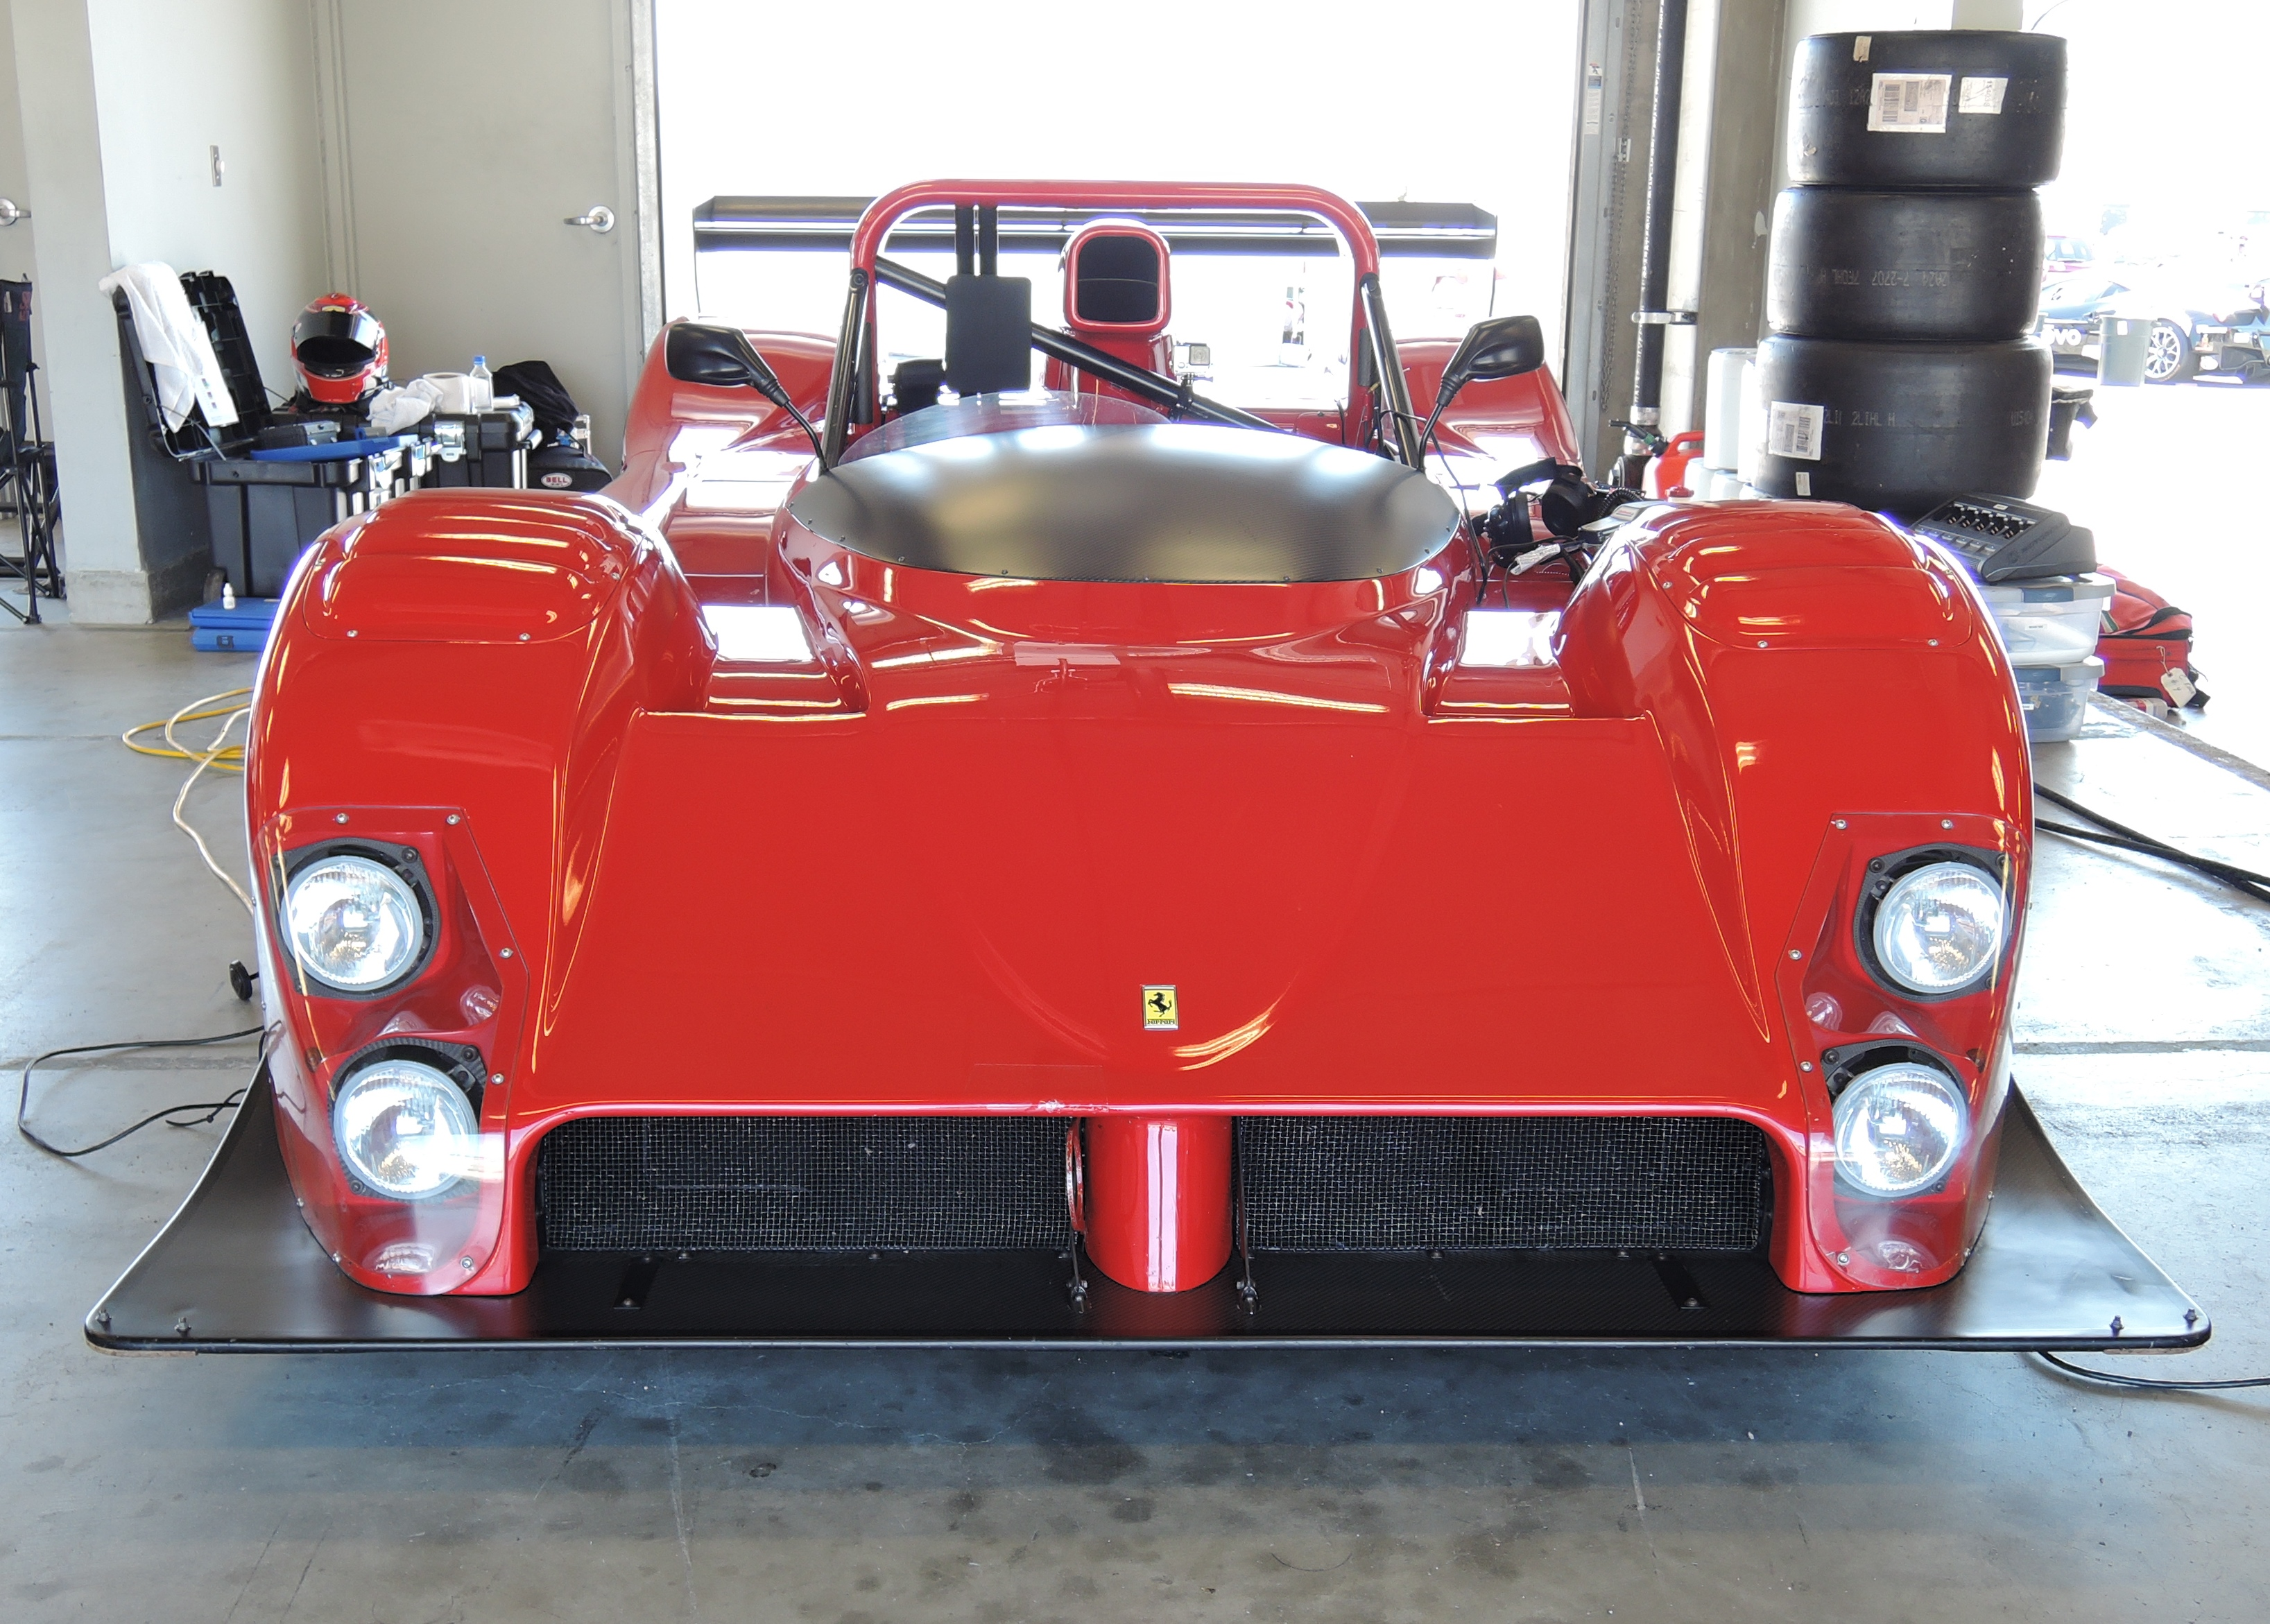 red ferrari 333 sp - ferrari club at laguna seca